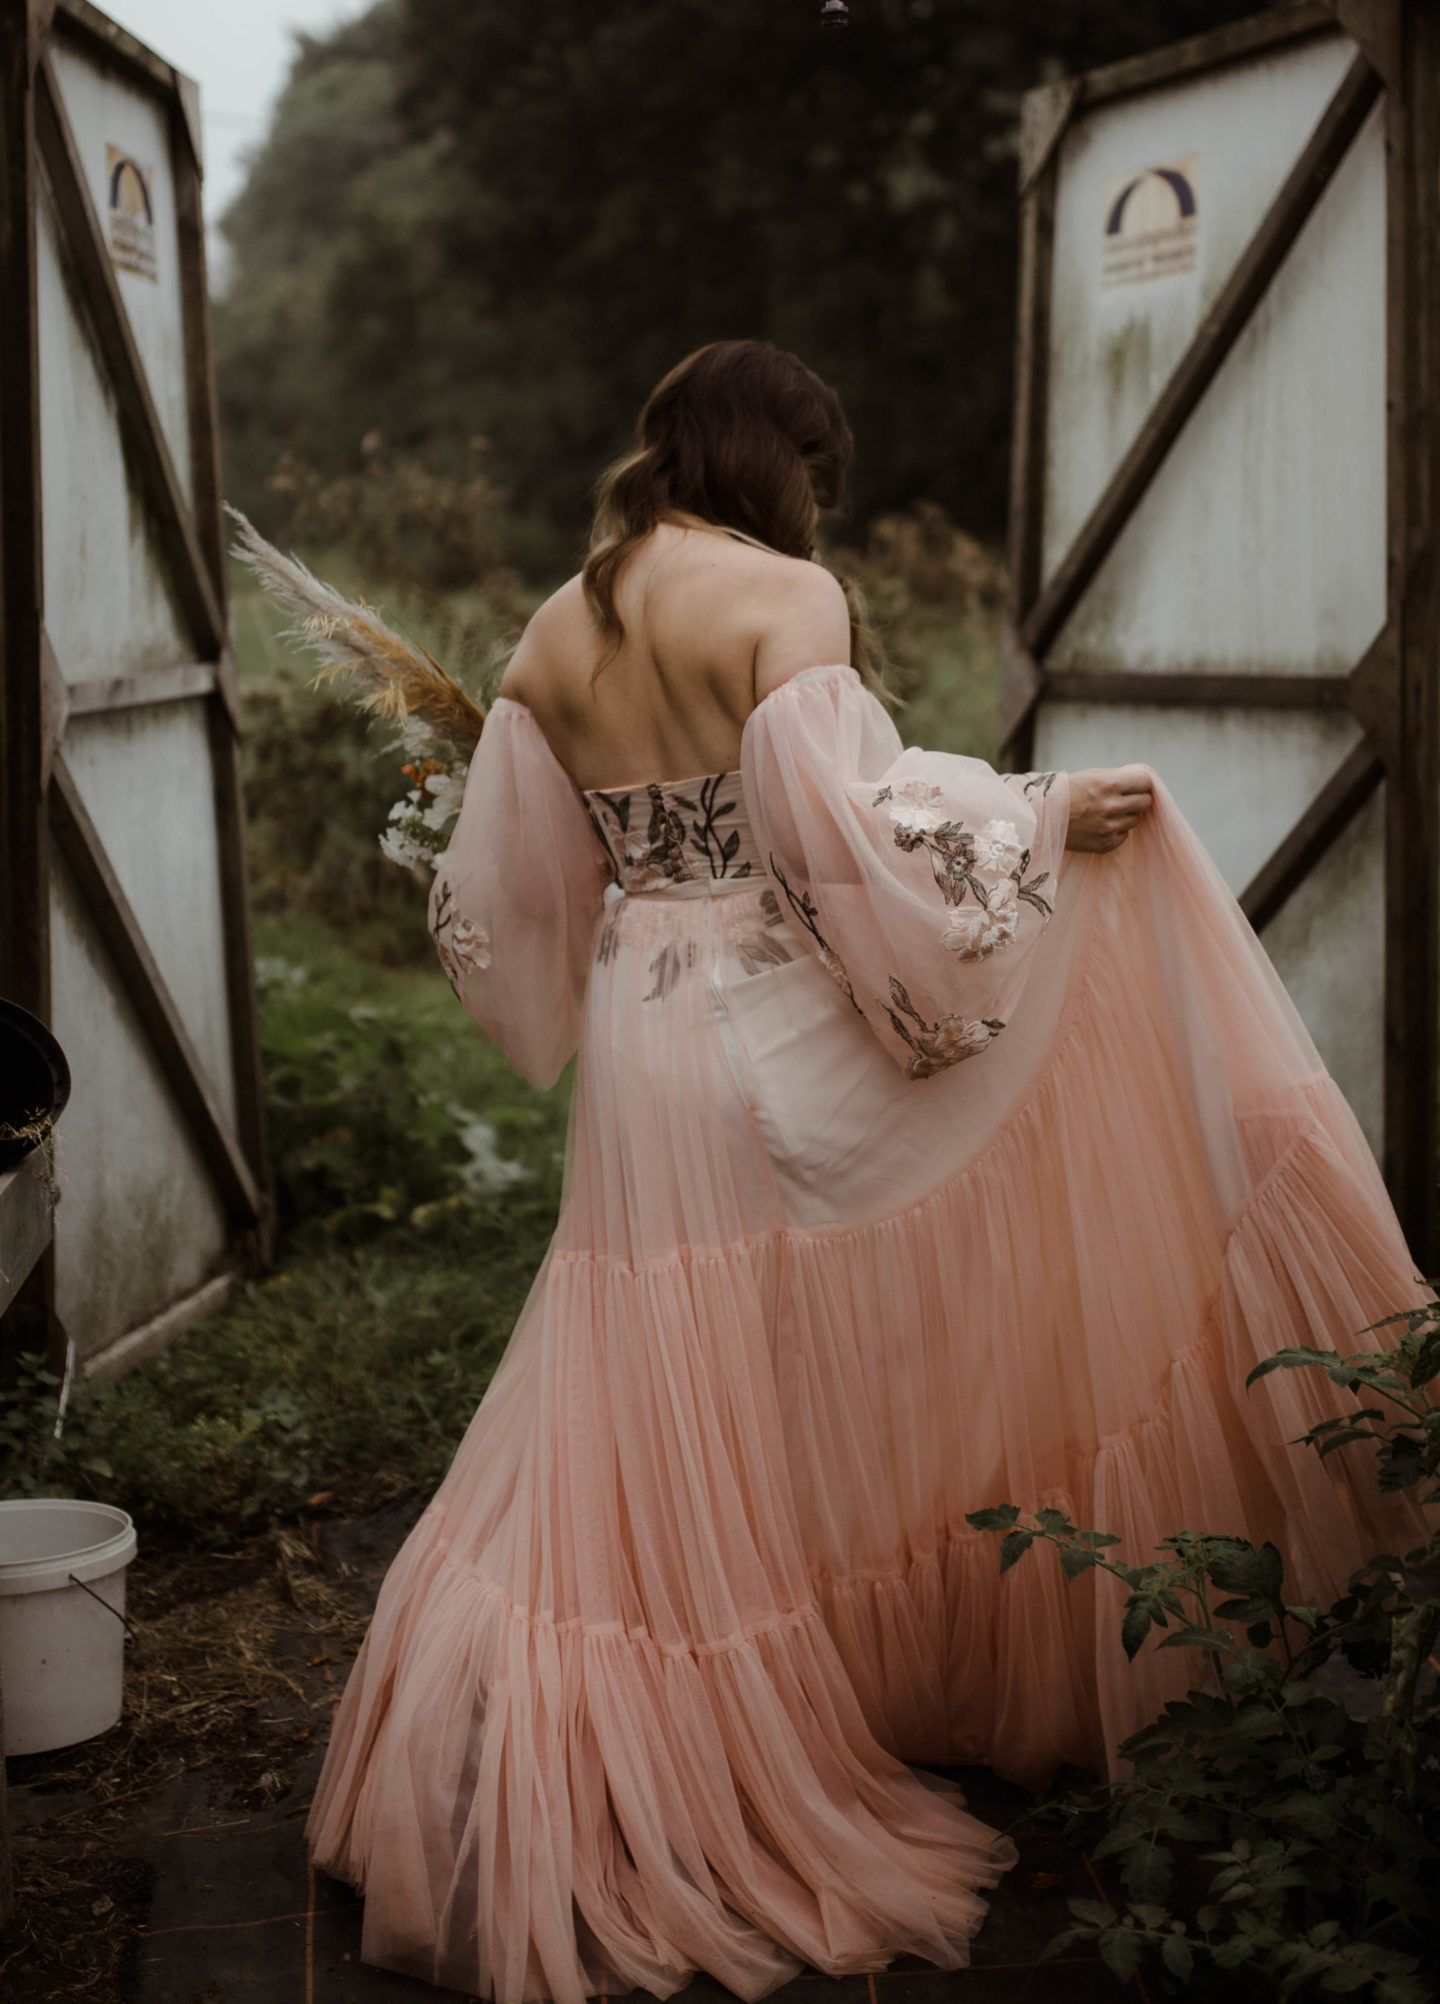 Micro Wedding With Pink Floral Wedding Dress At Manor Farm, Bristol